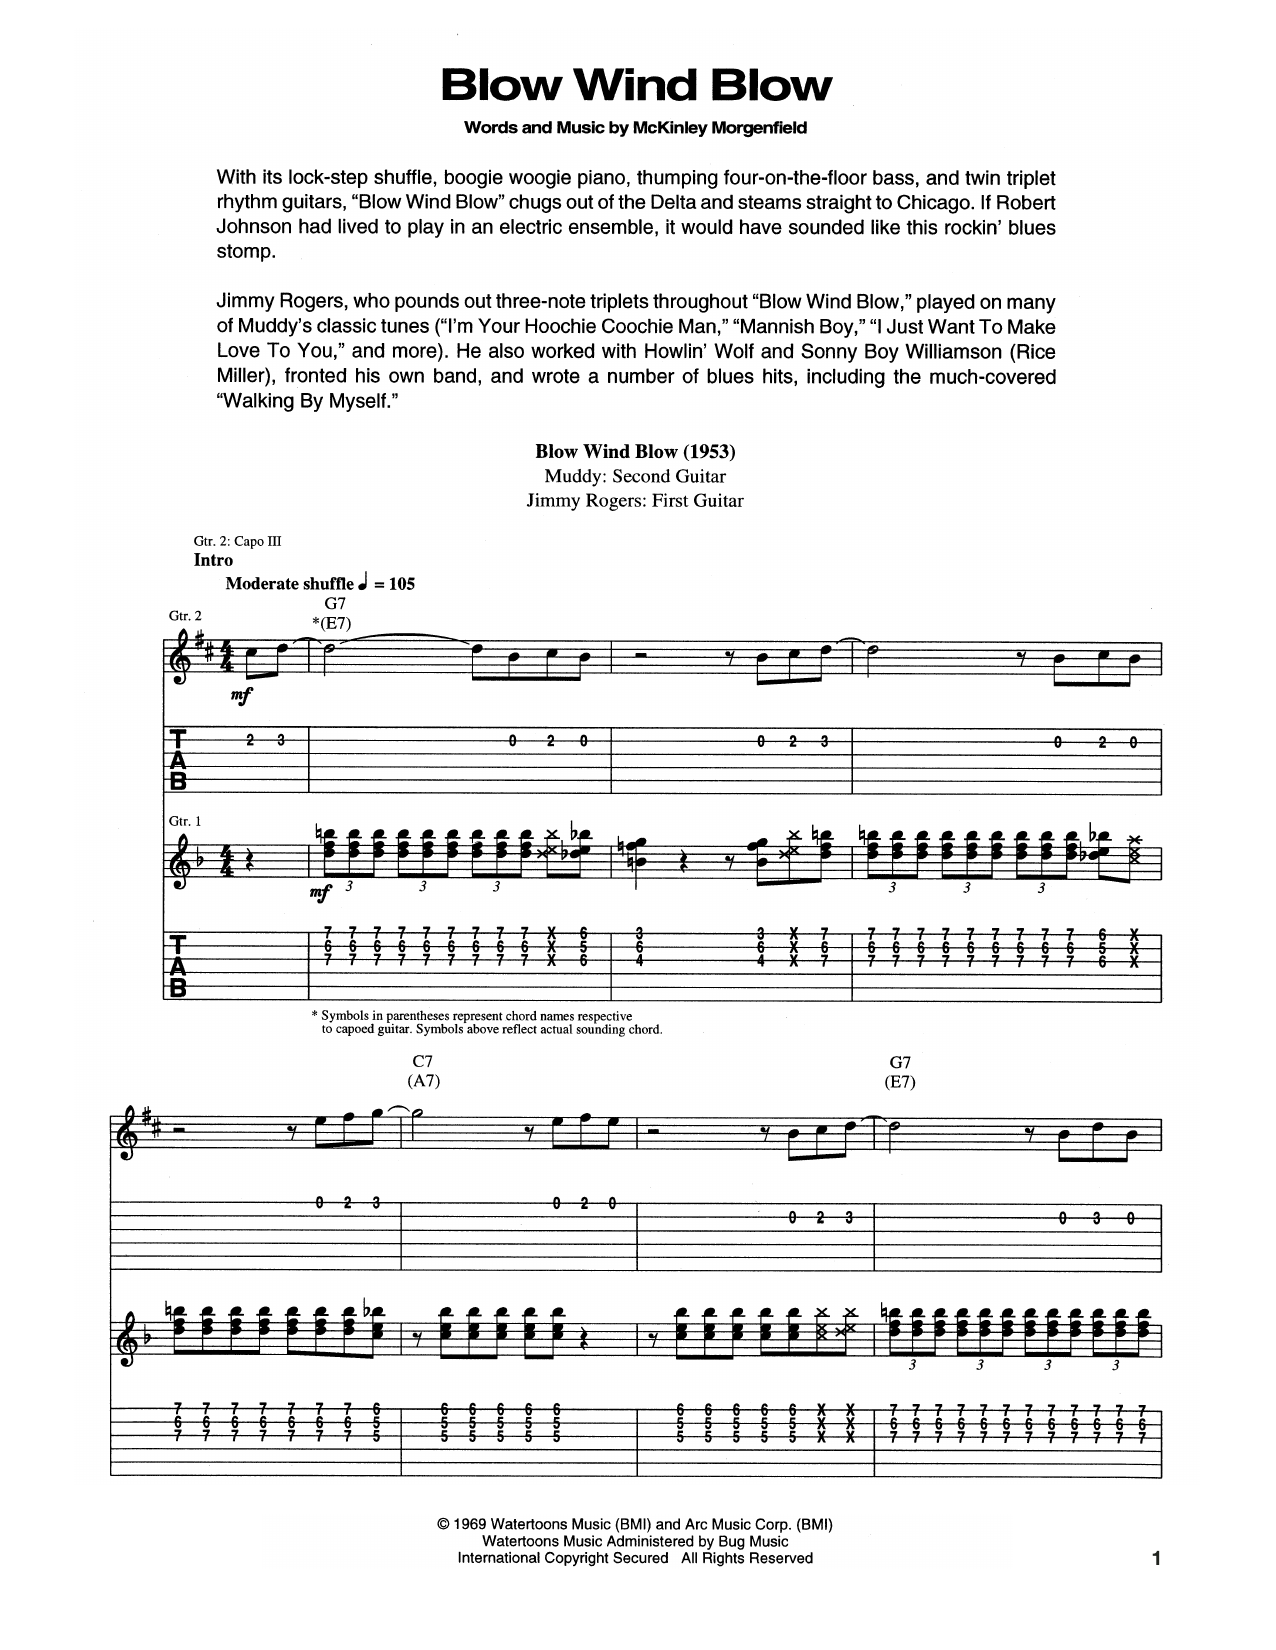 Blow, Wind, Blow Sheet Music